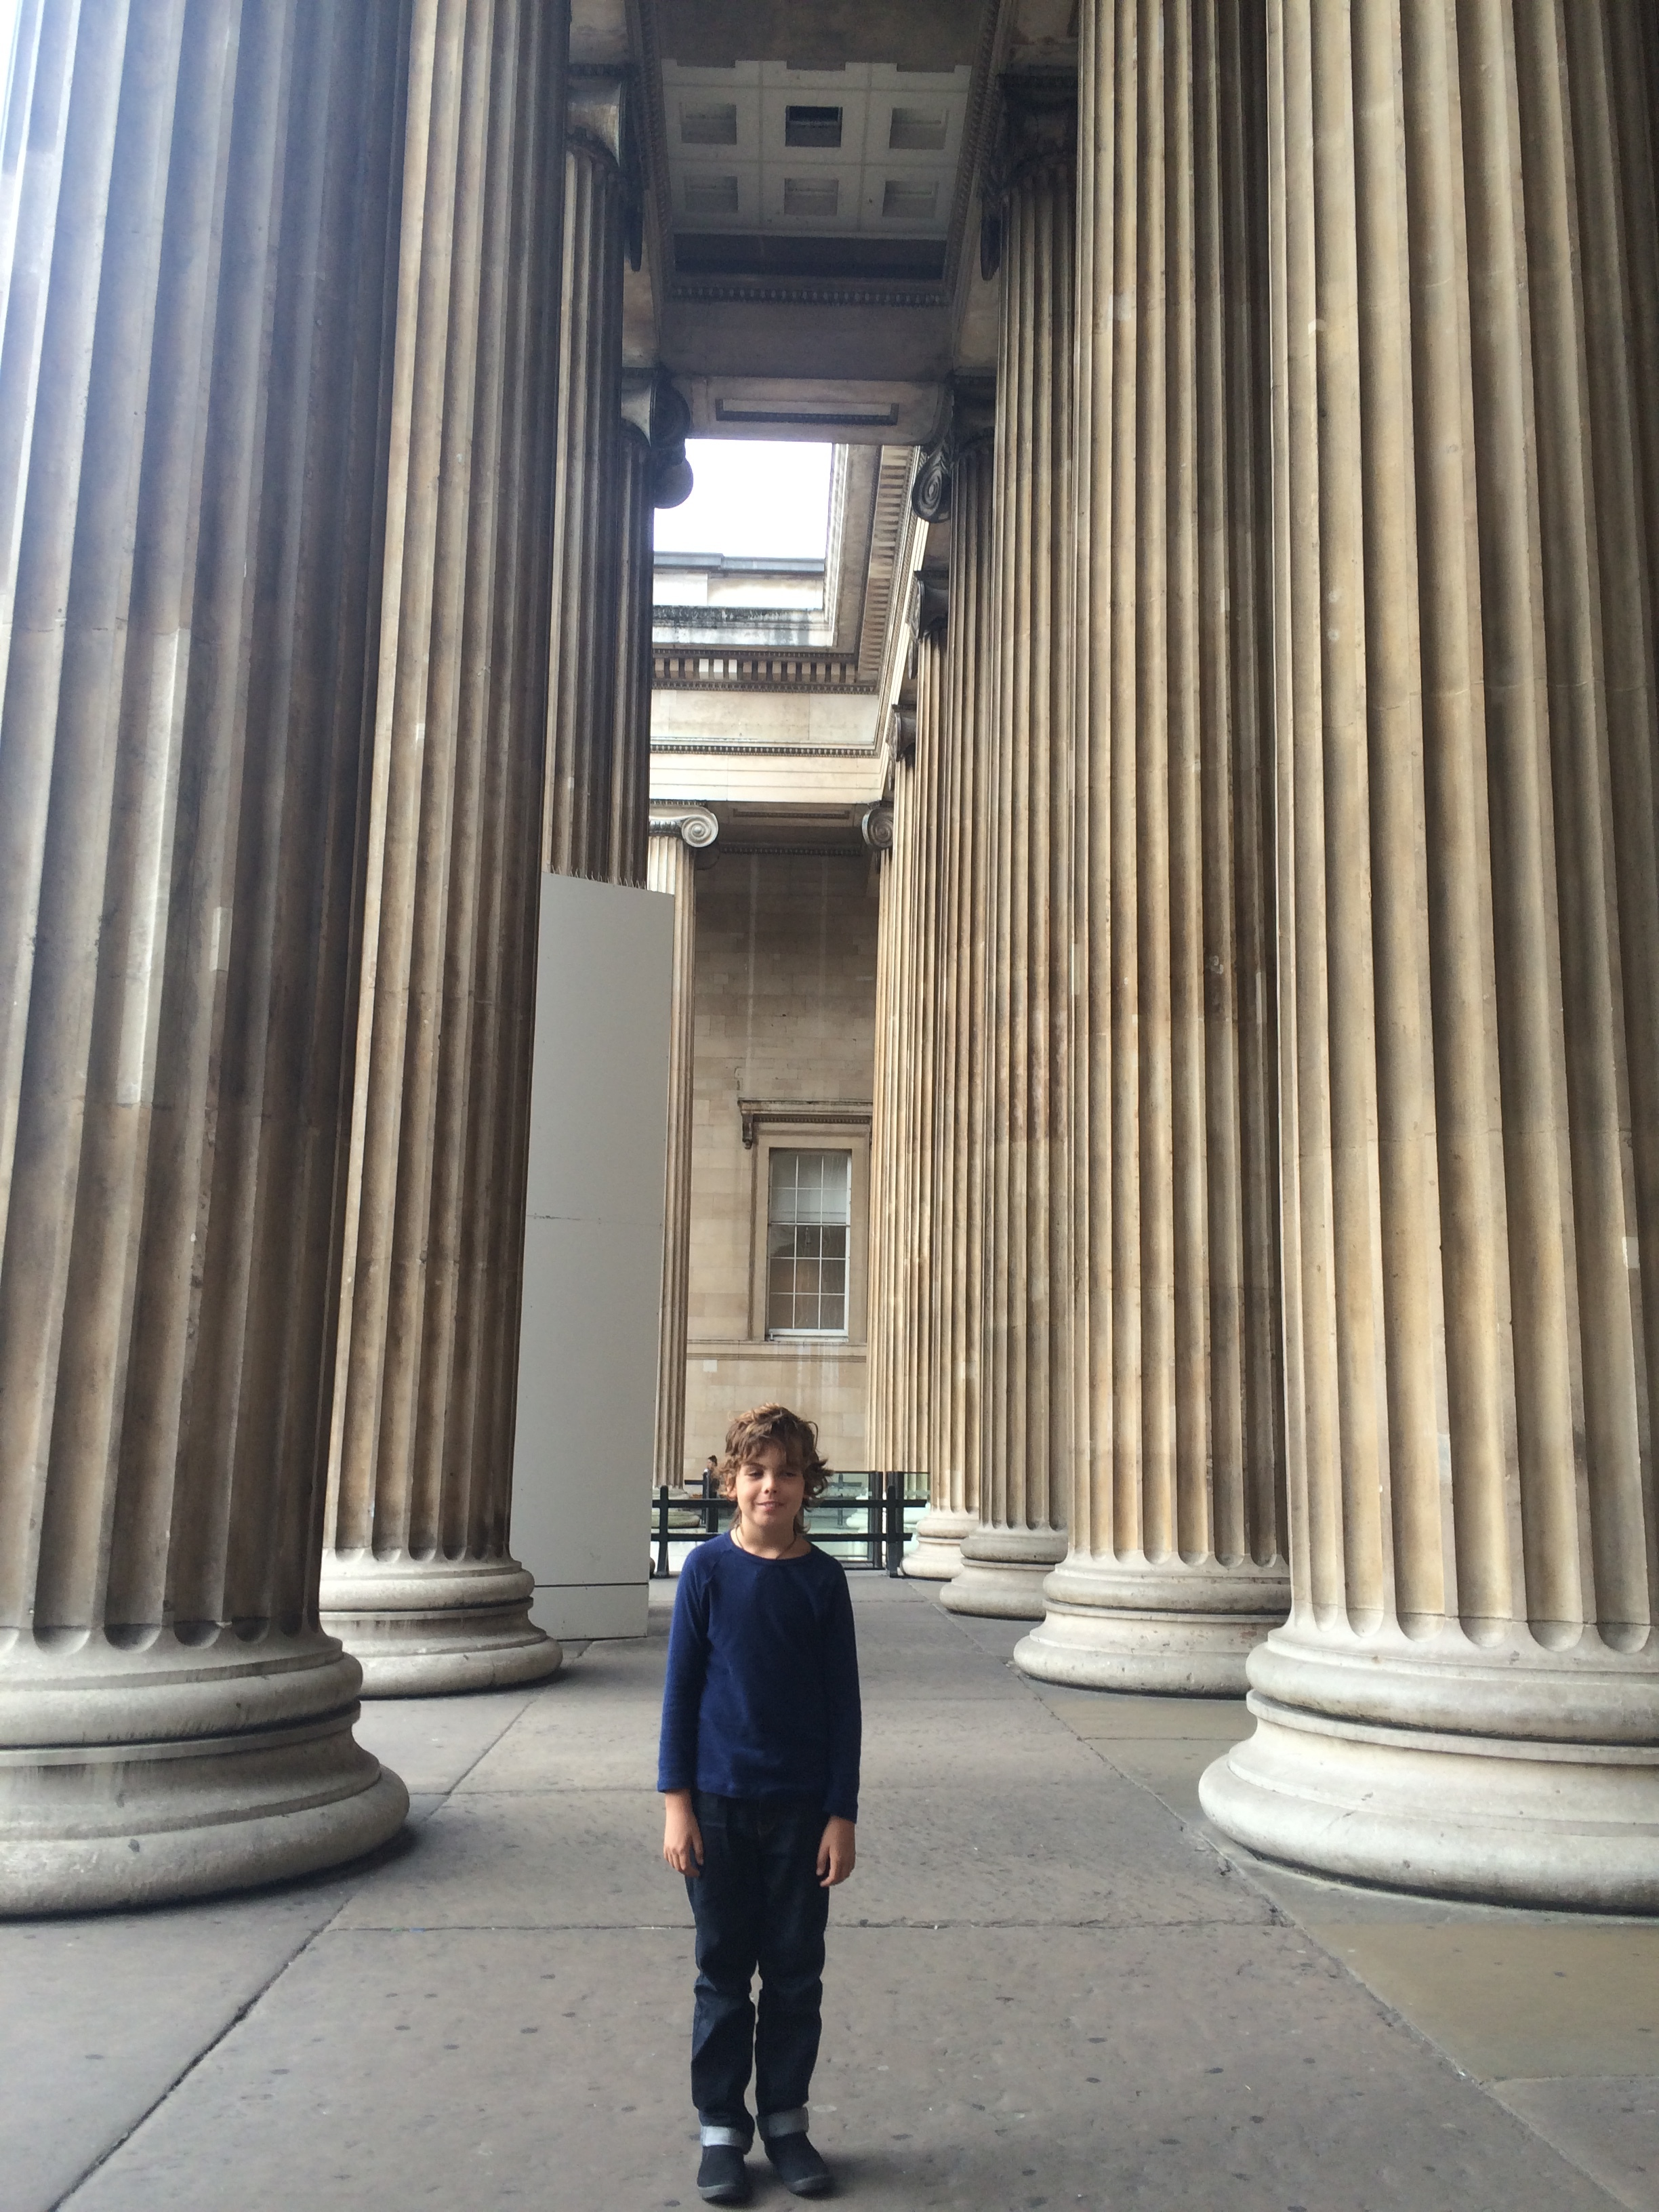 Me at the British Museum. Today I am going to see my friend Joshua and he is coming to my place. We are meeting at the British Museum. We are going to learn about the Iron Age.